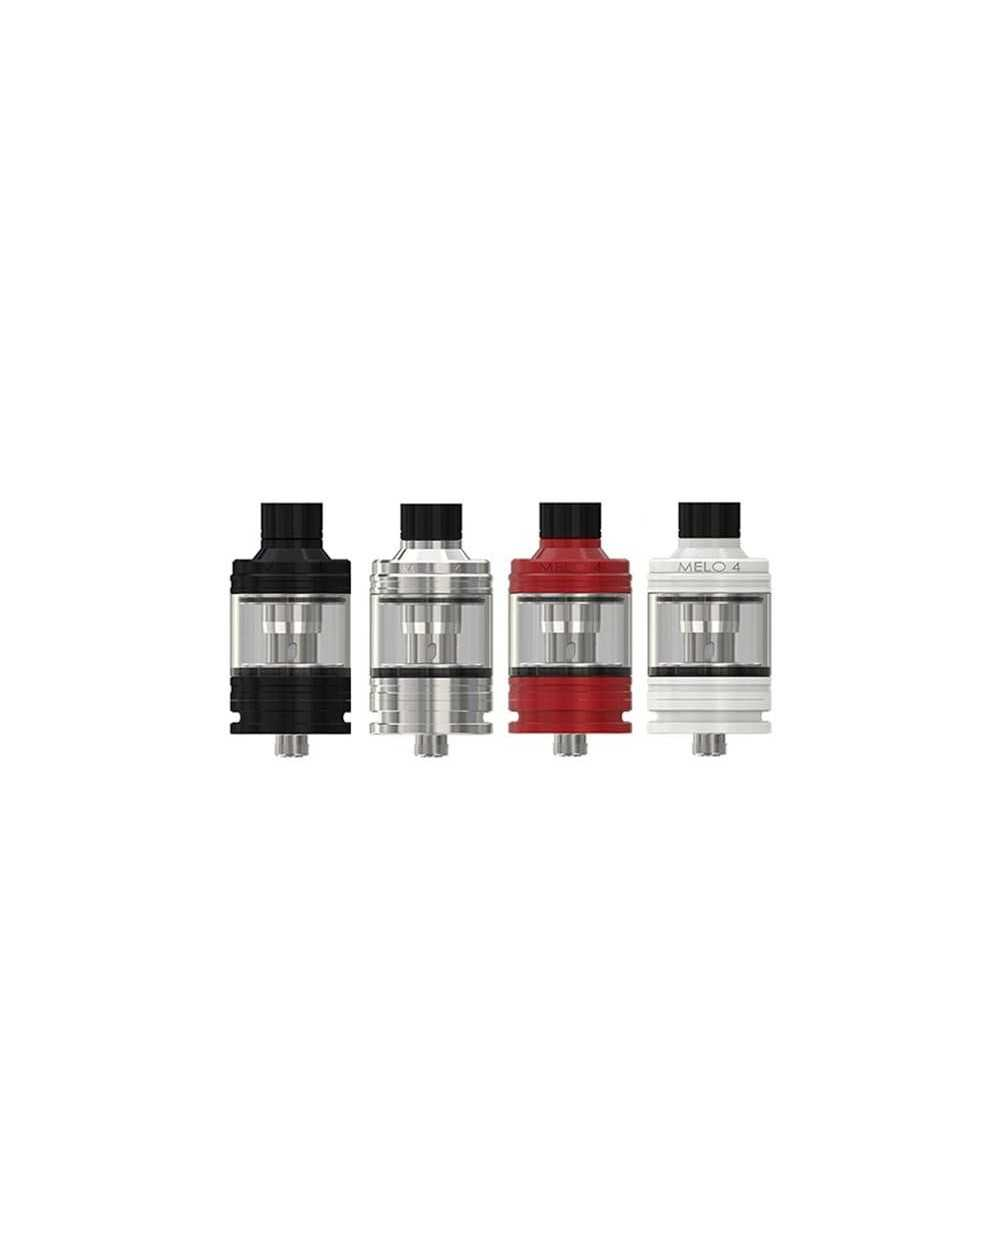 Clearomiseur Melo 4 D25 - Eleaf-1